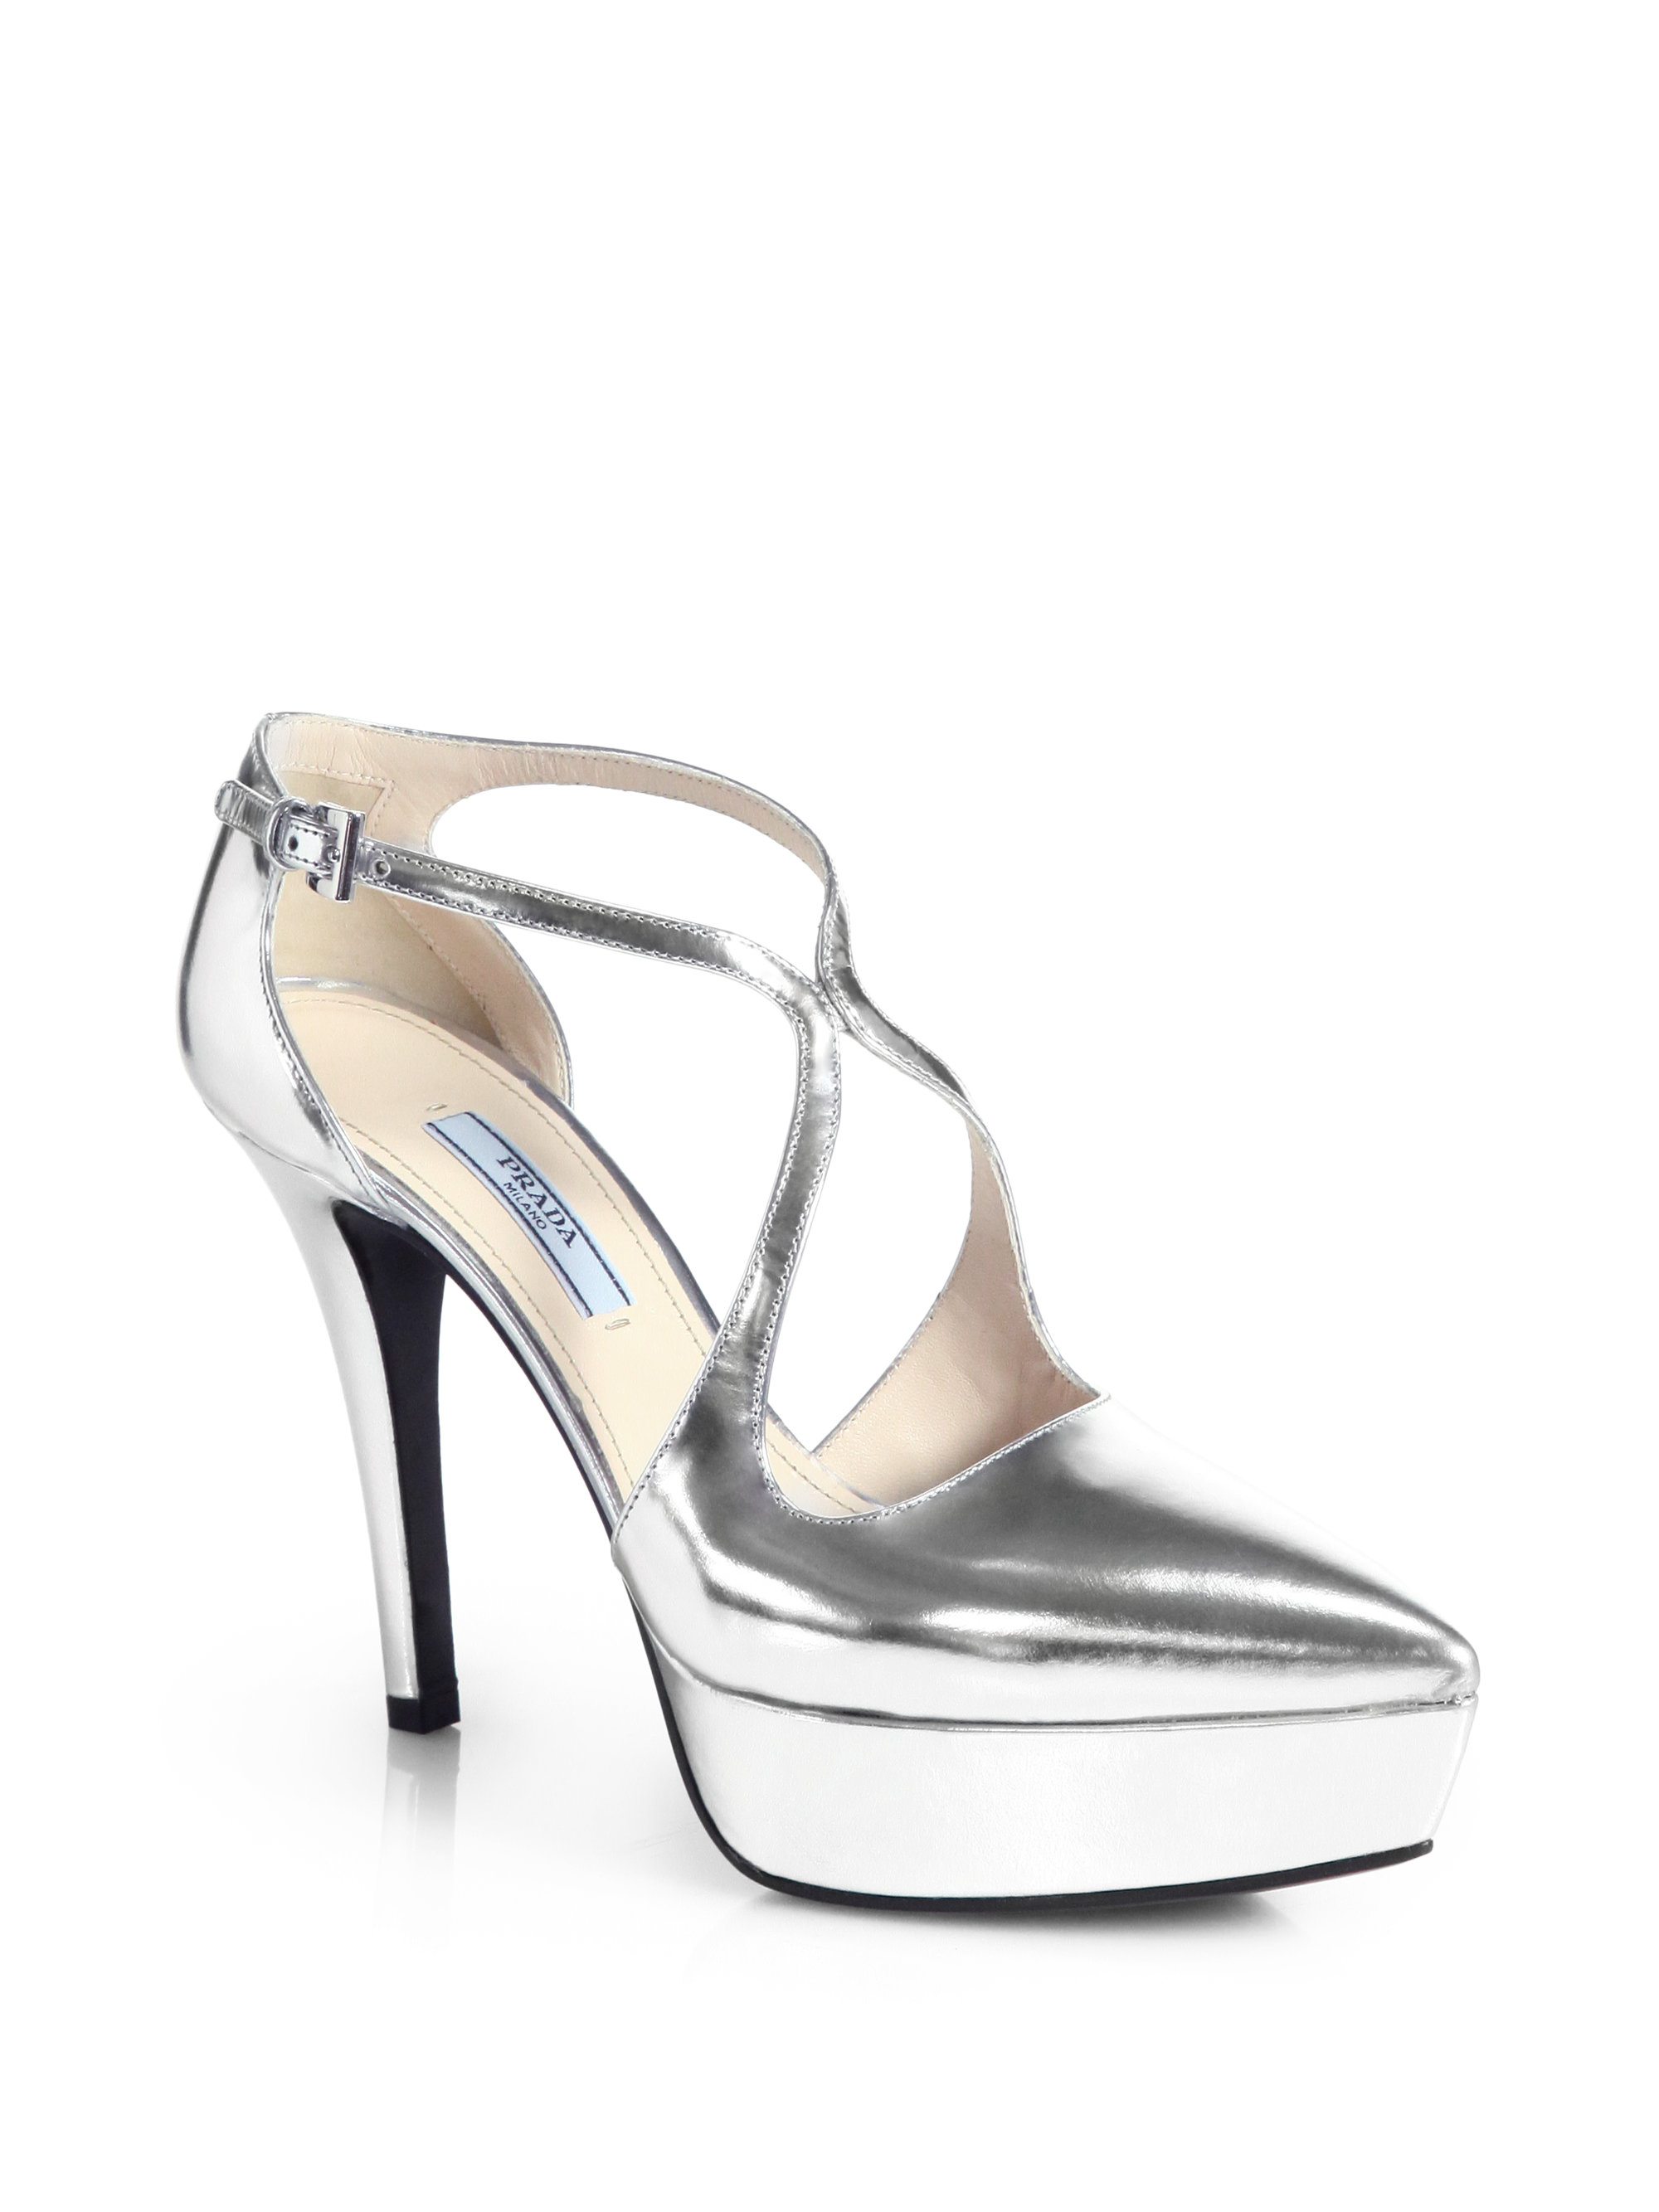 Prada Metallic Leather Crossover Platform Pumps In Silver